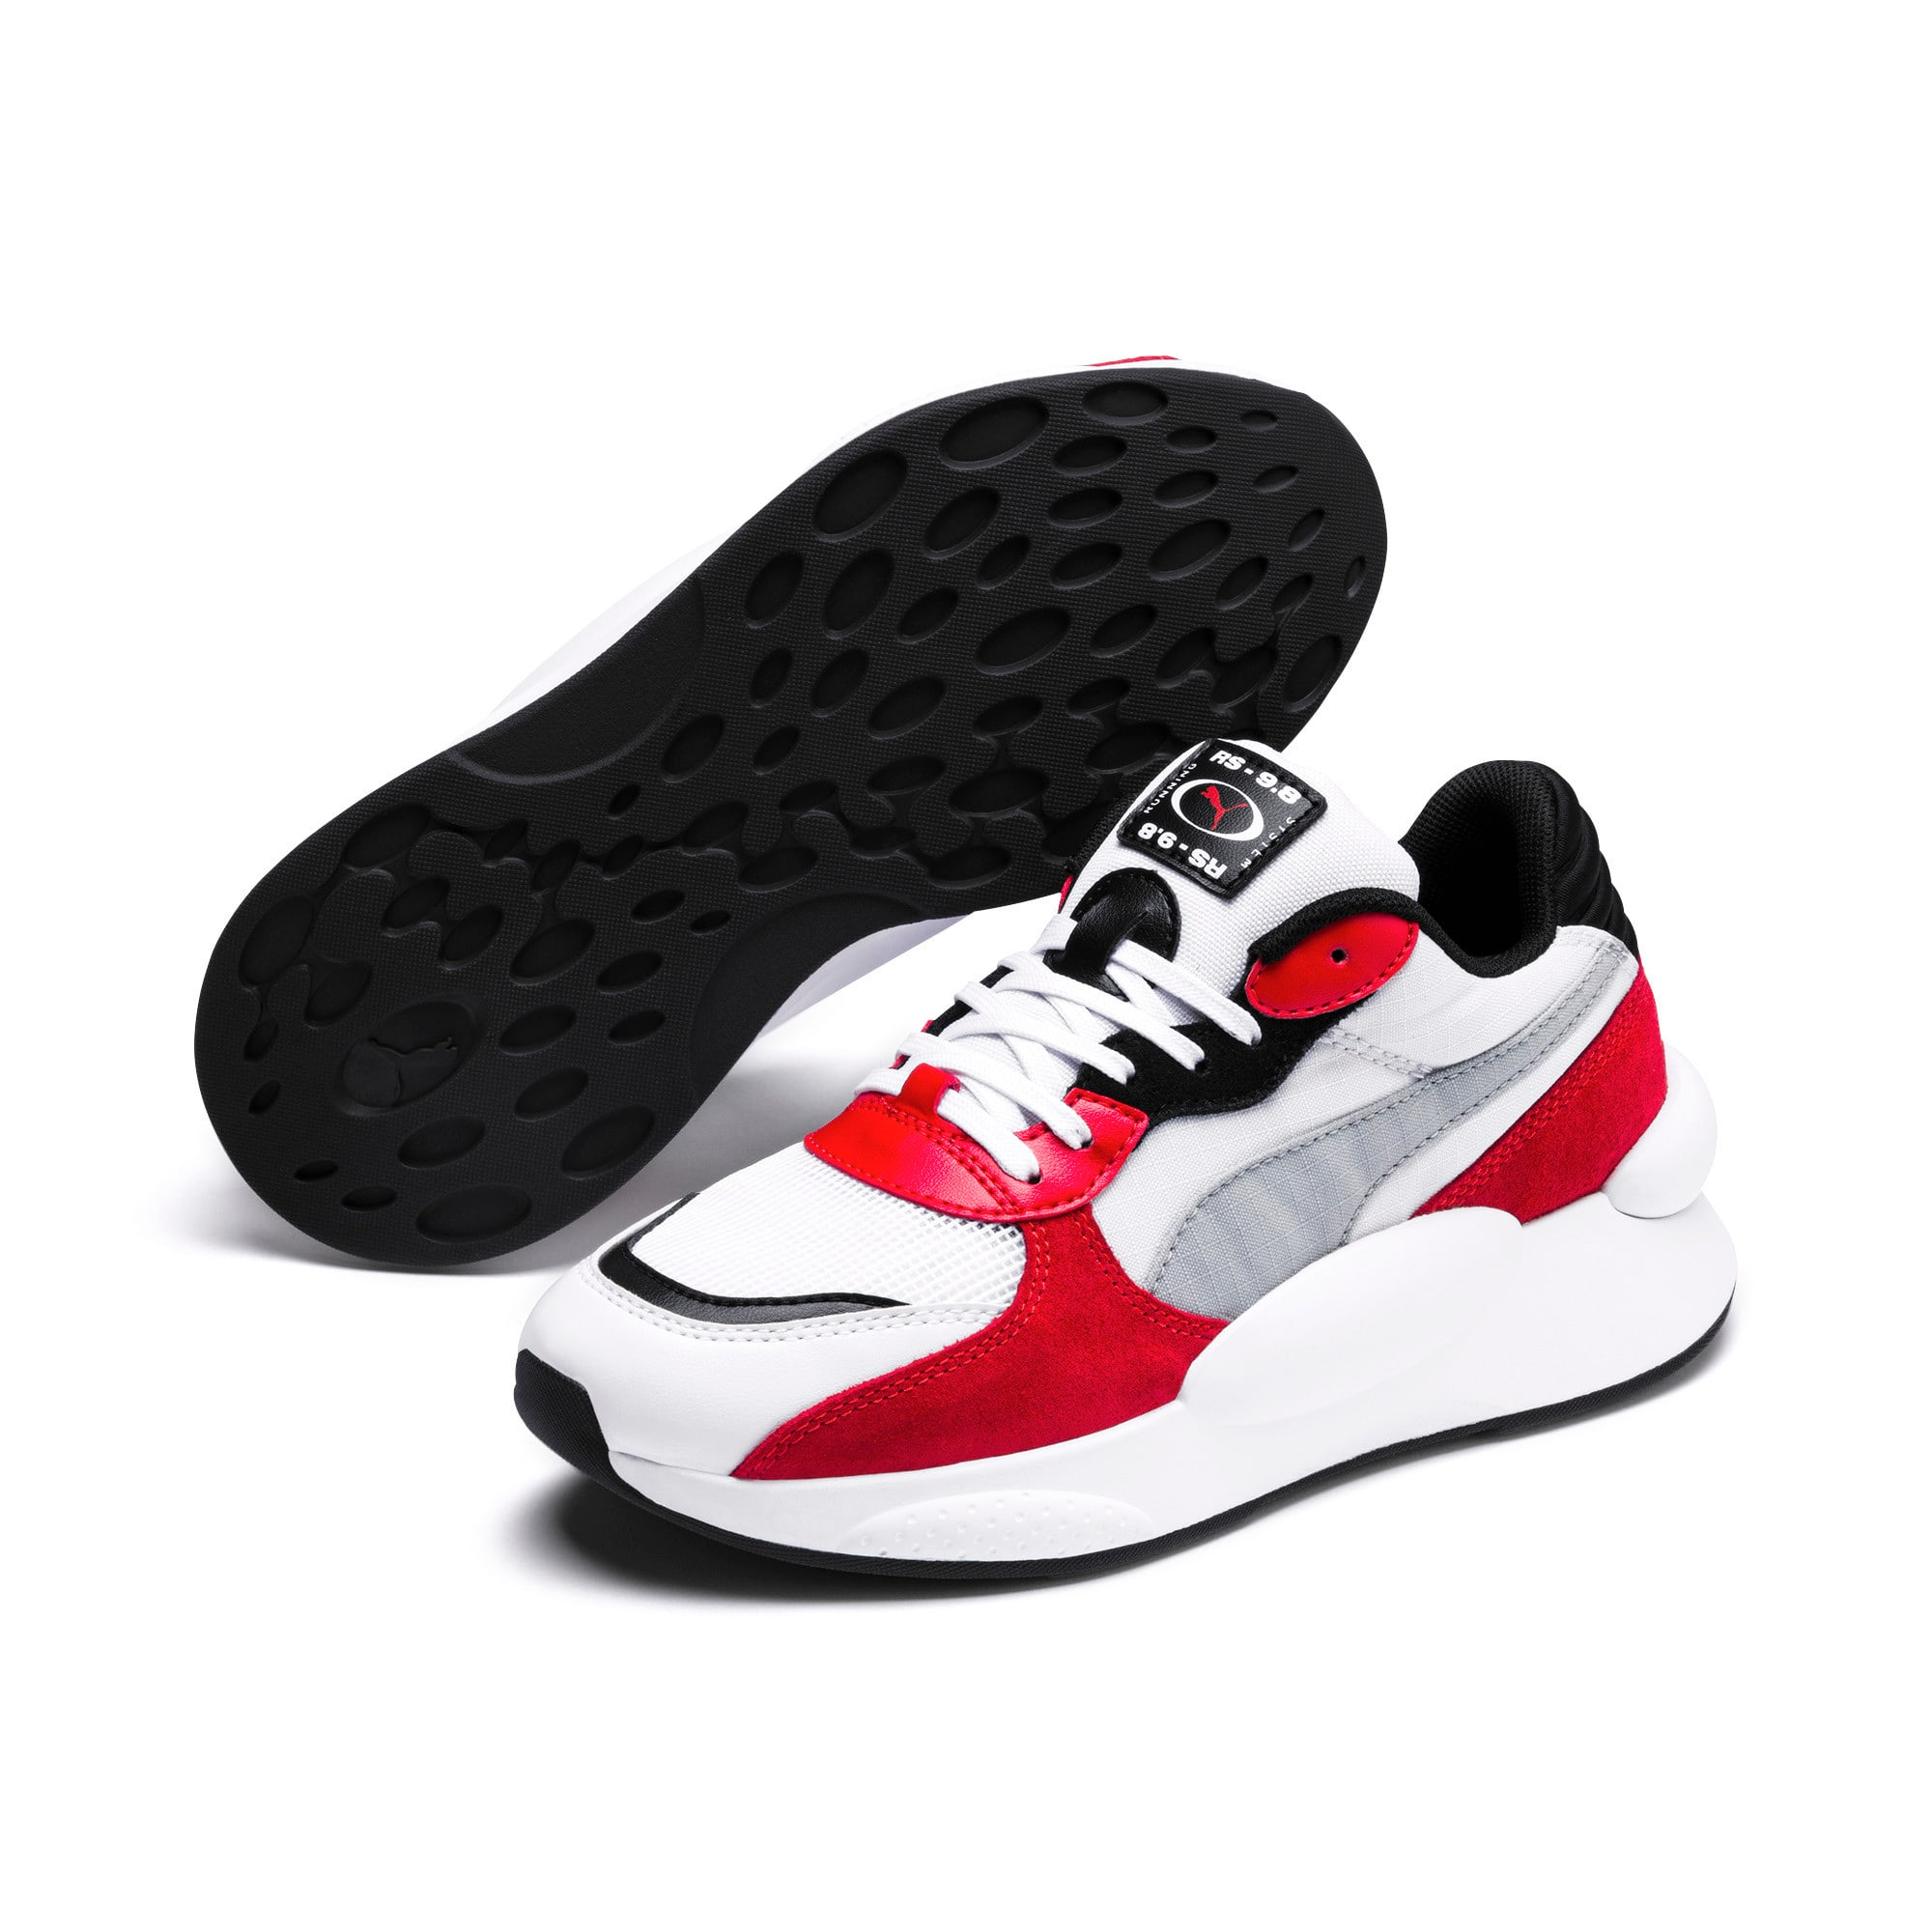 Thumbnail 2 of RS 9.8 Space Youth Sneaker, Puma White-High Risk Red, medium